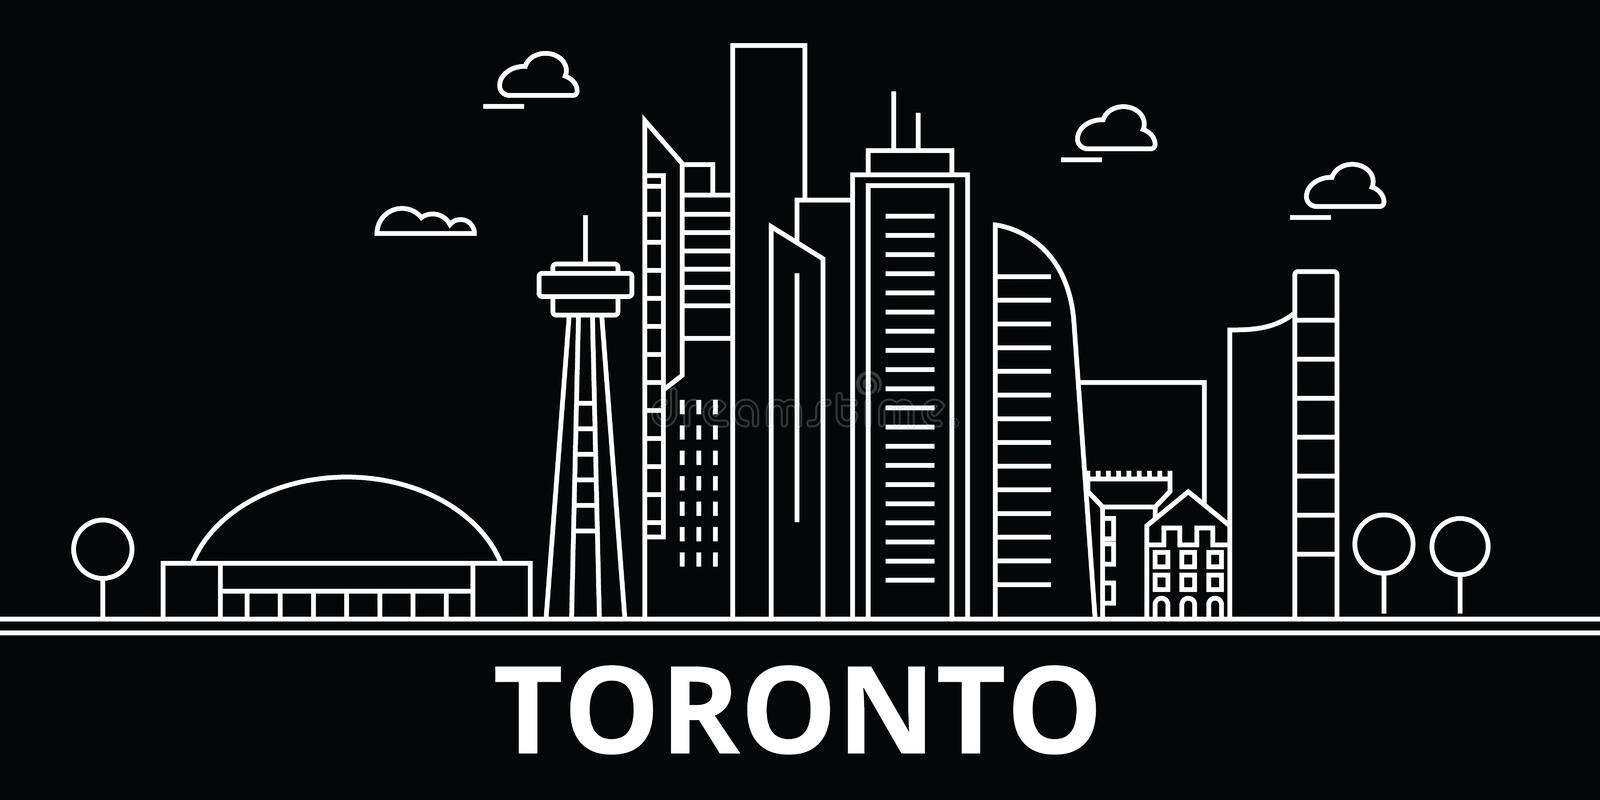 Toronto silhouette skyline. Canada - Toronto vector city, canadian linear architecture, buildings. Toronto travel stock illustration